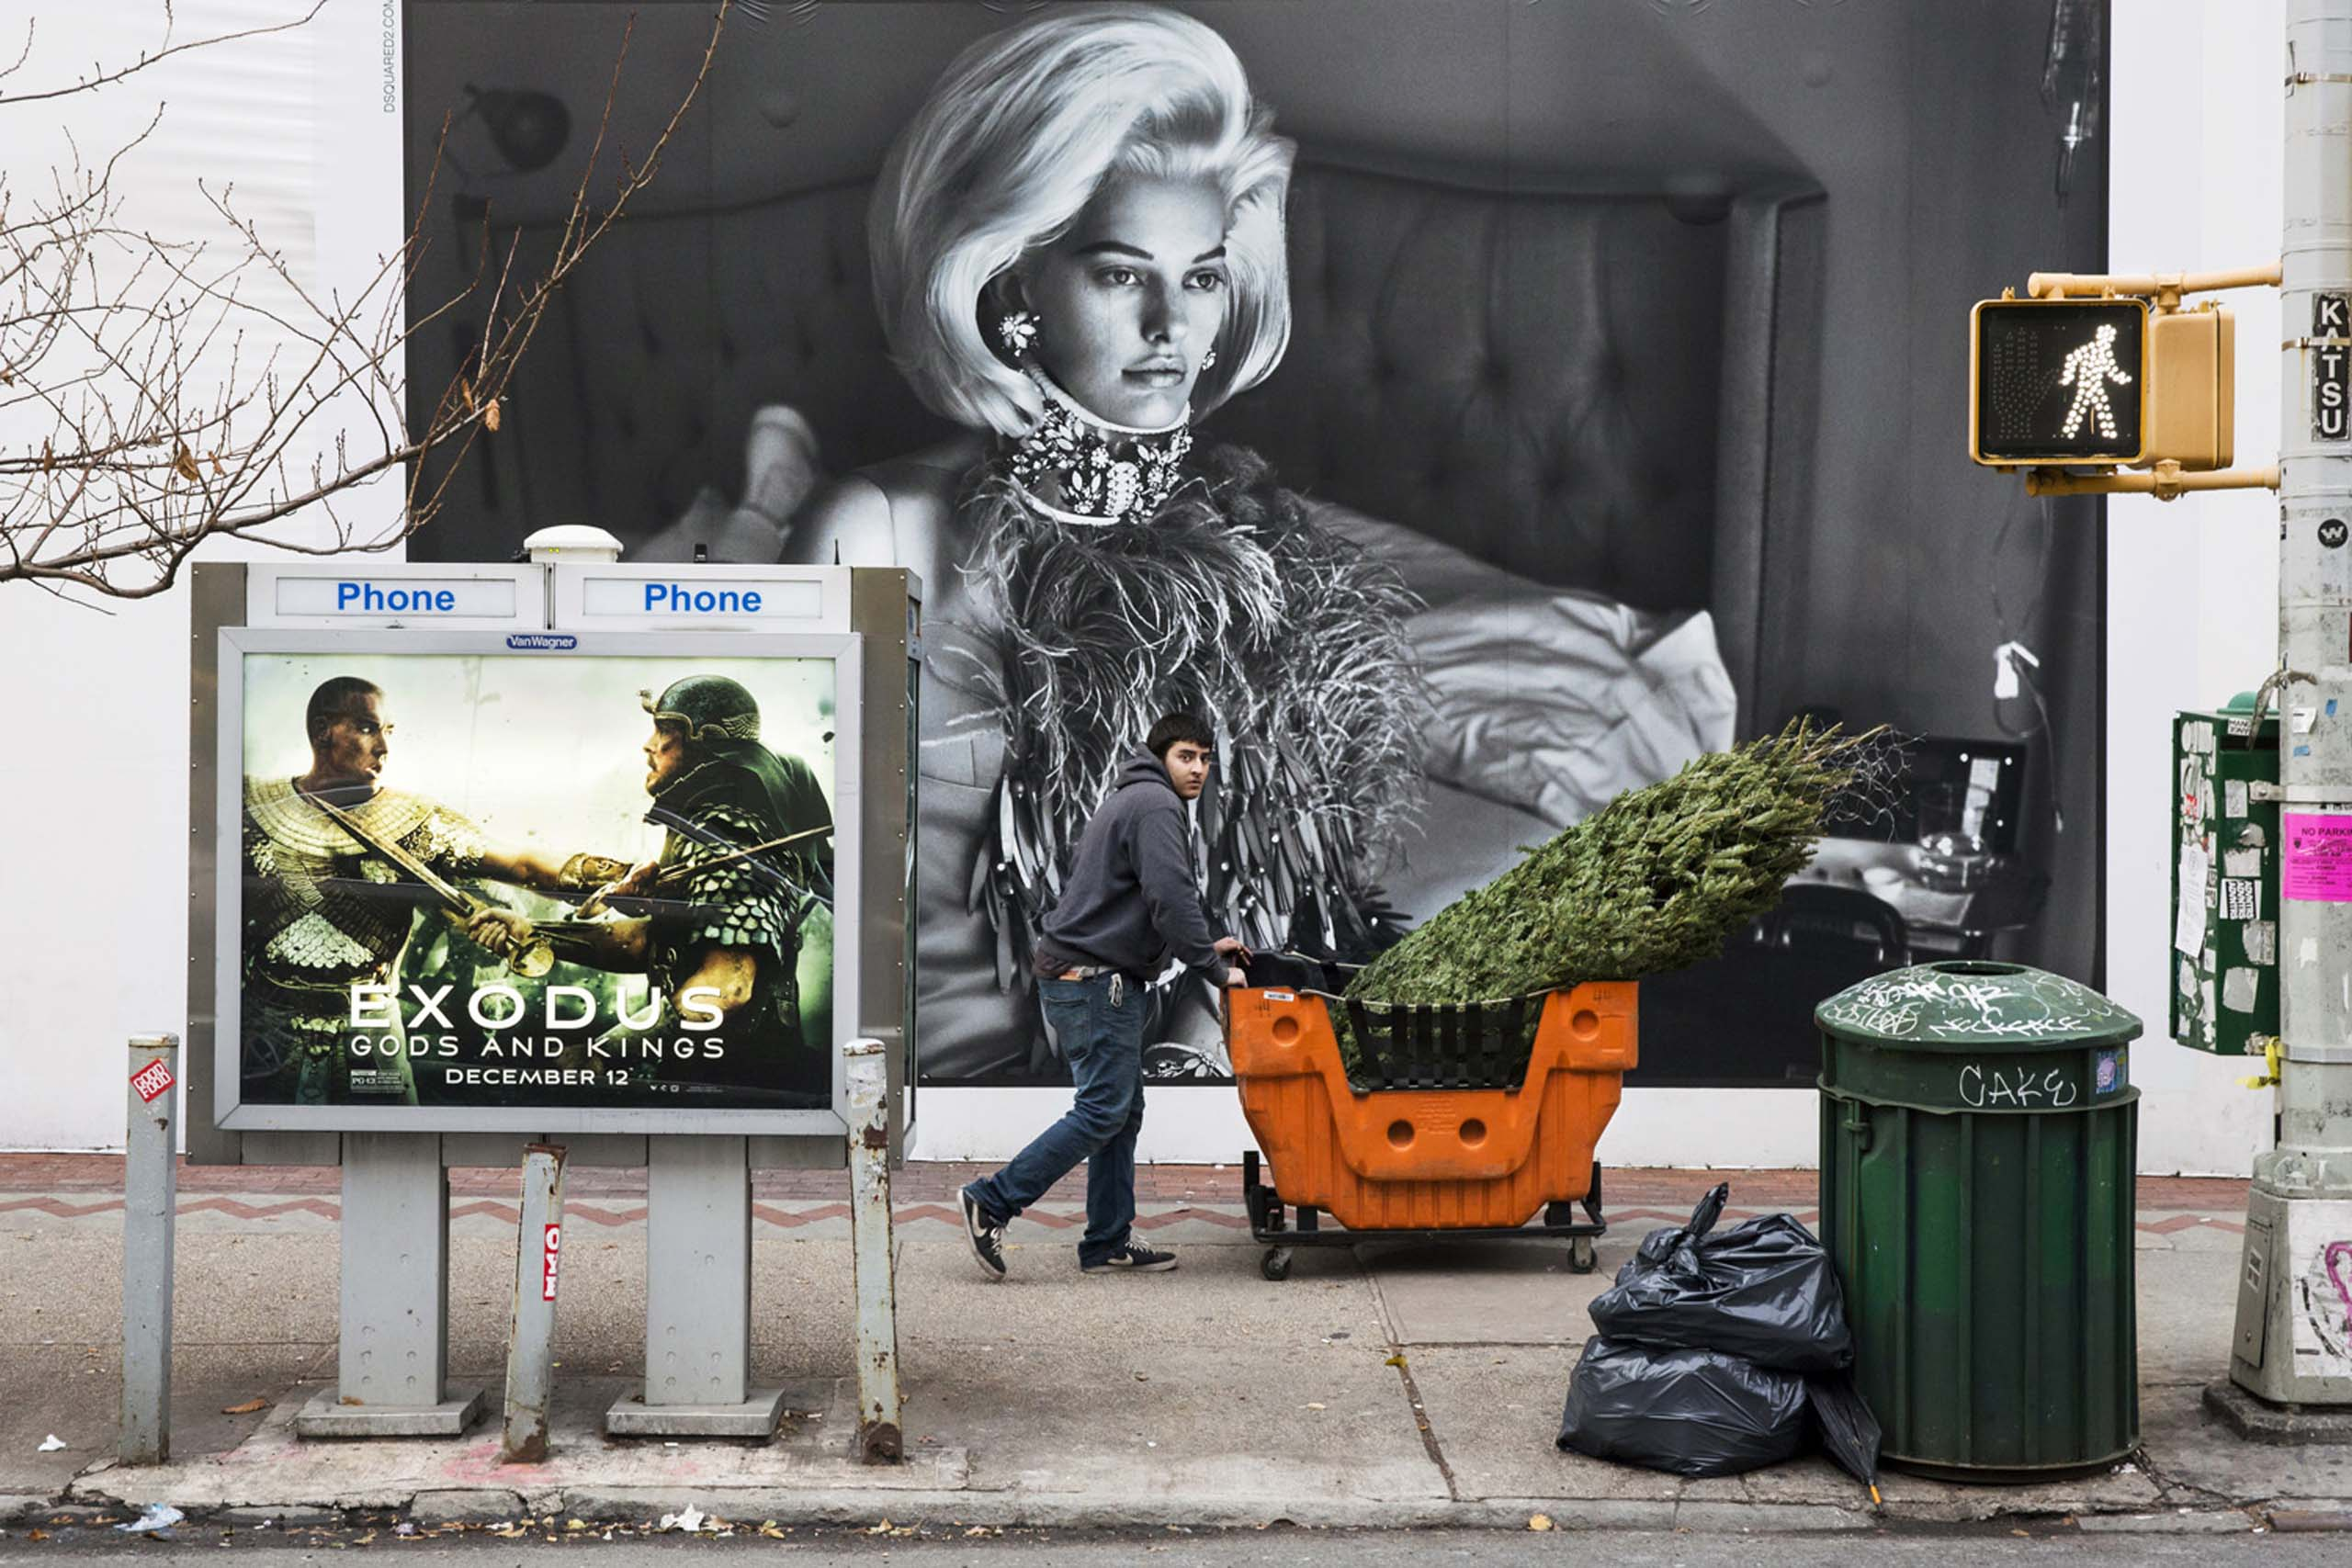 A man pushes a cart containing a wrapped Christmas Tree next to a DSquared2 billboard on West Broadway Avenue, New York, Dec. 12, 2014.